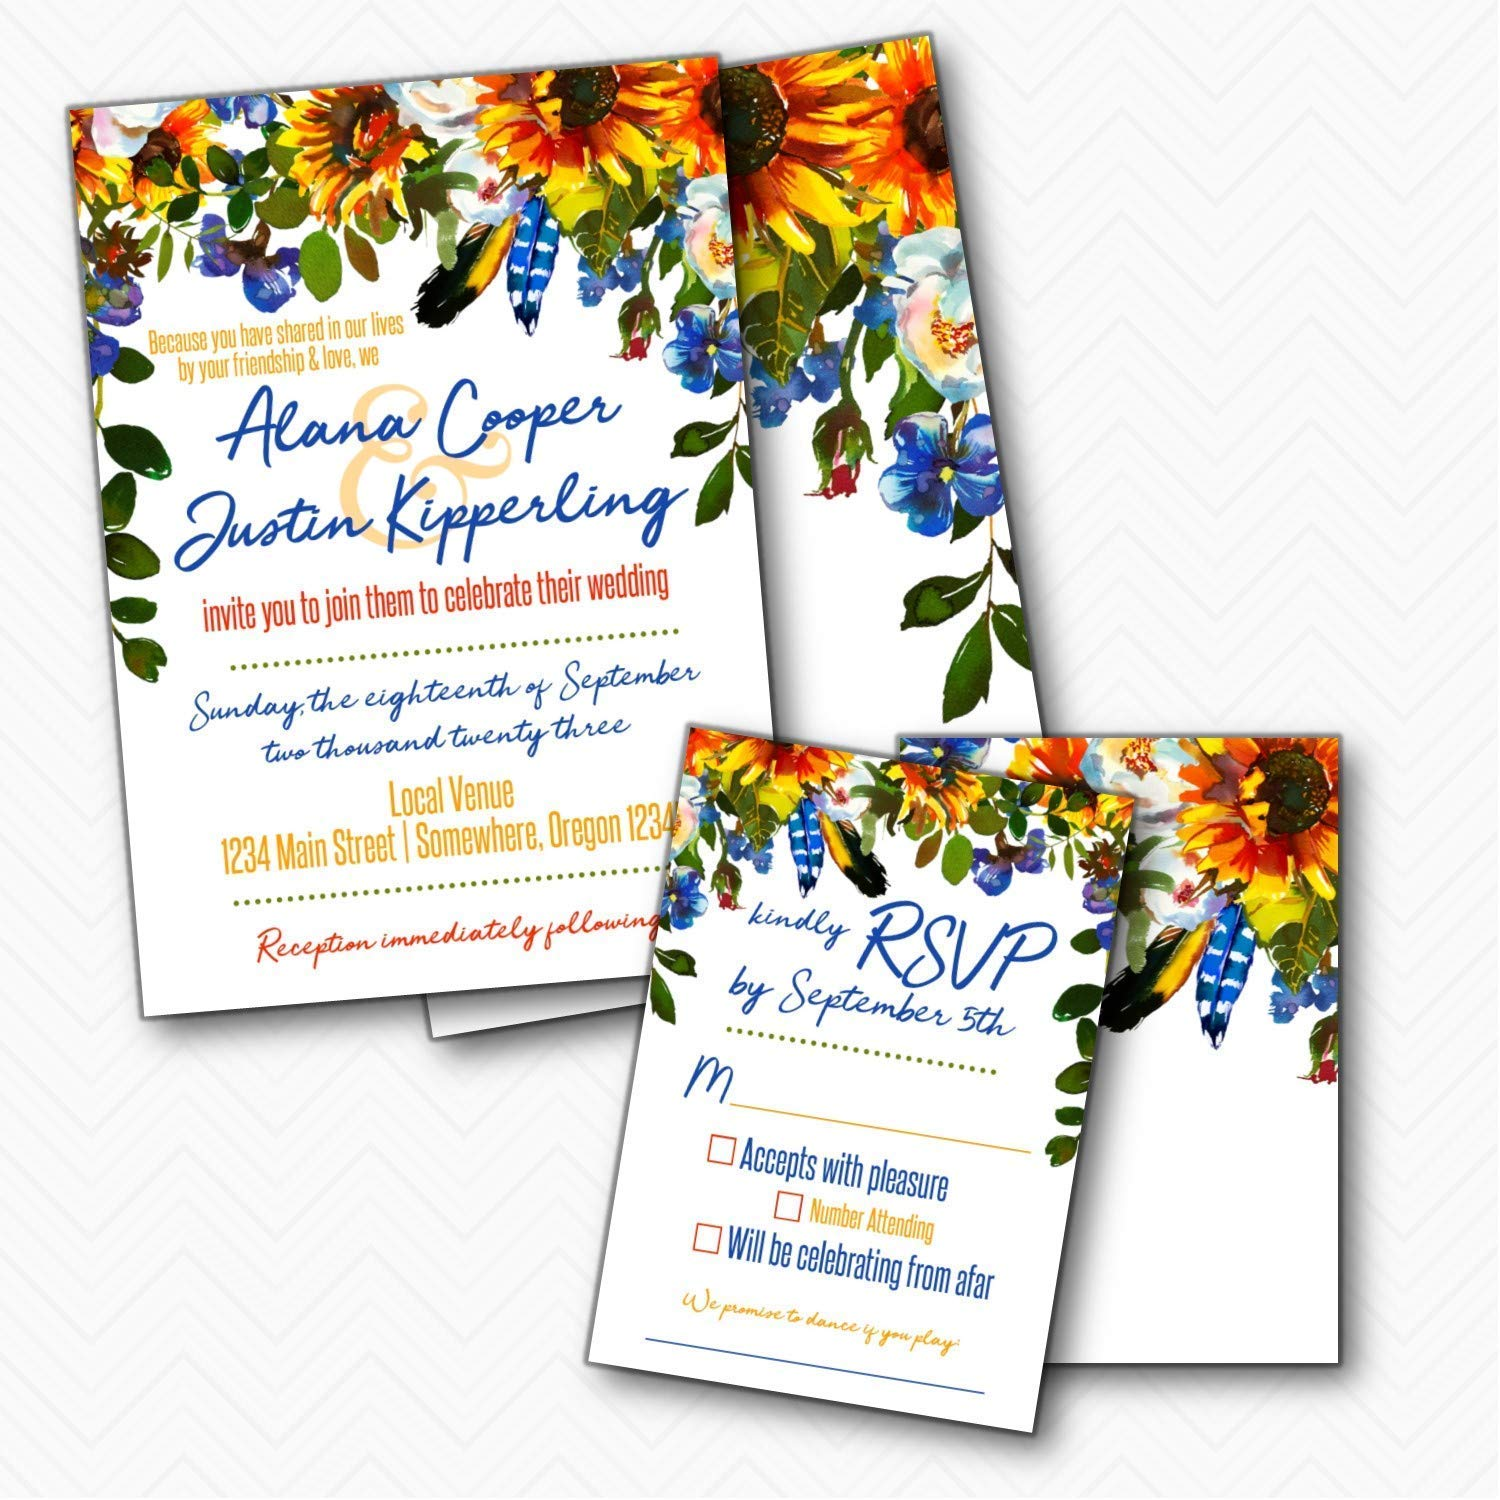 Boho Feather Fall Sunflower Wedding RSVP Limited price set wit Invitation with favorite